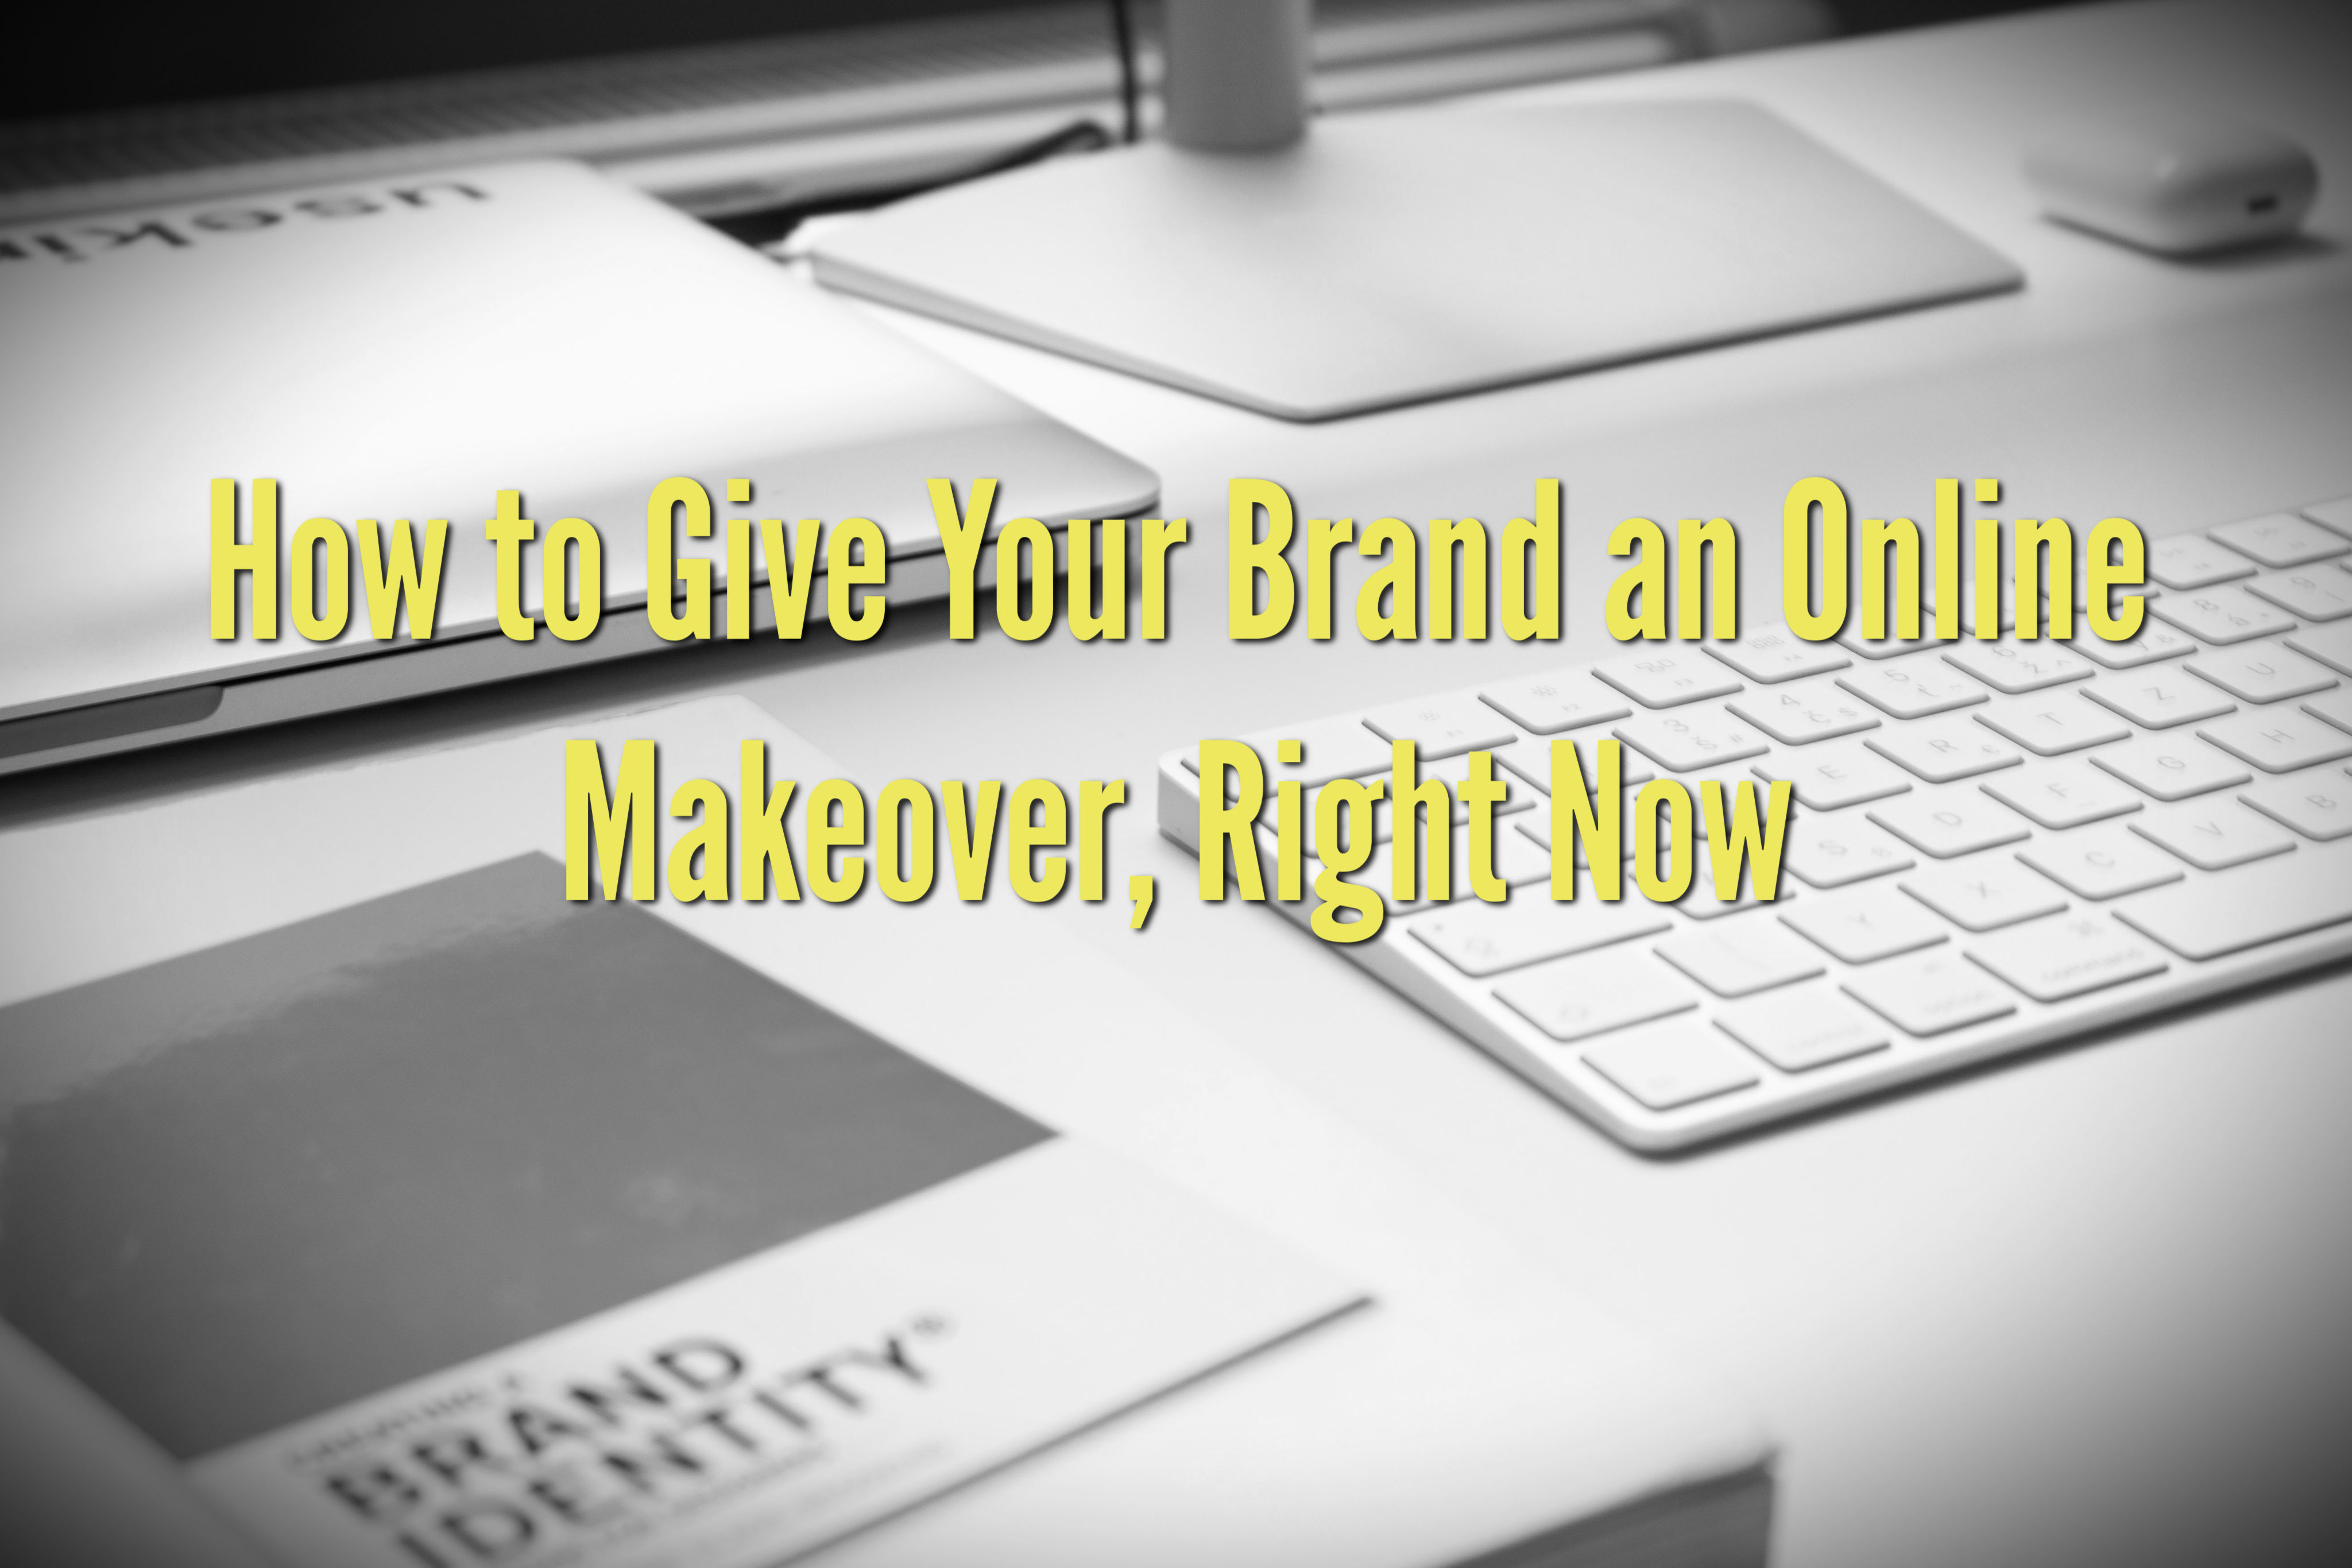 How to Give Your Brand an Online Makeover, Right Now